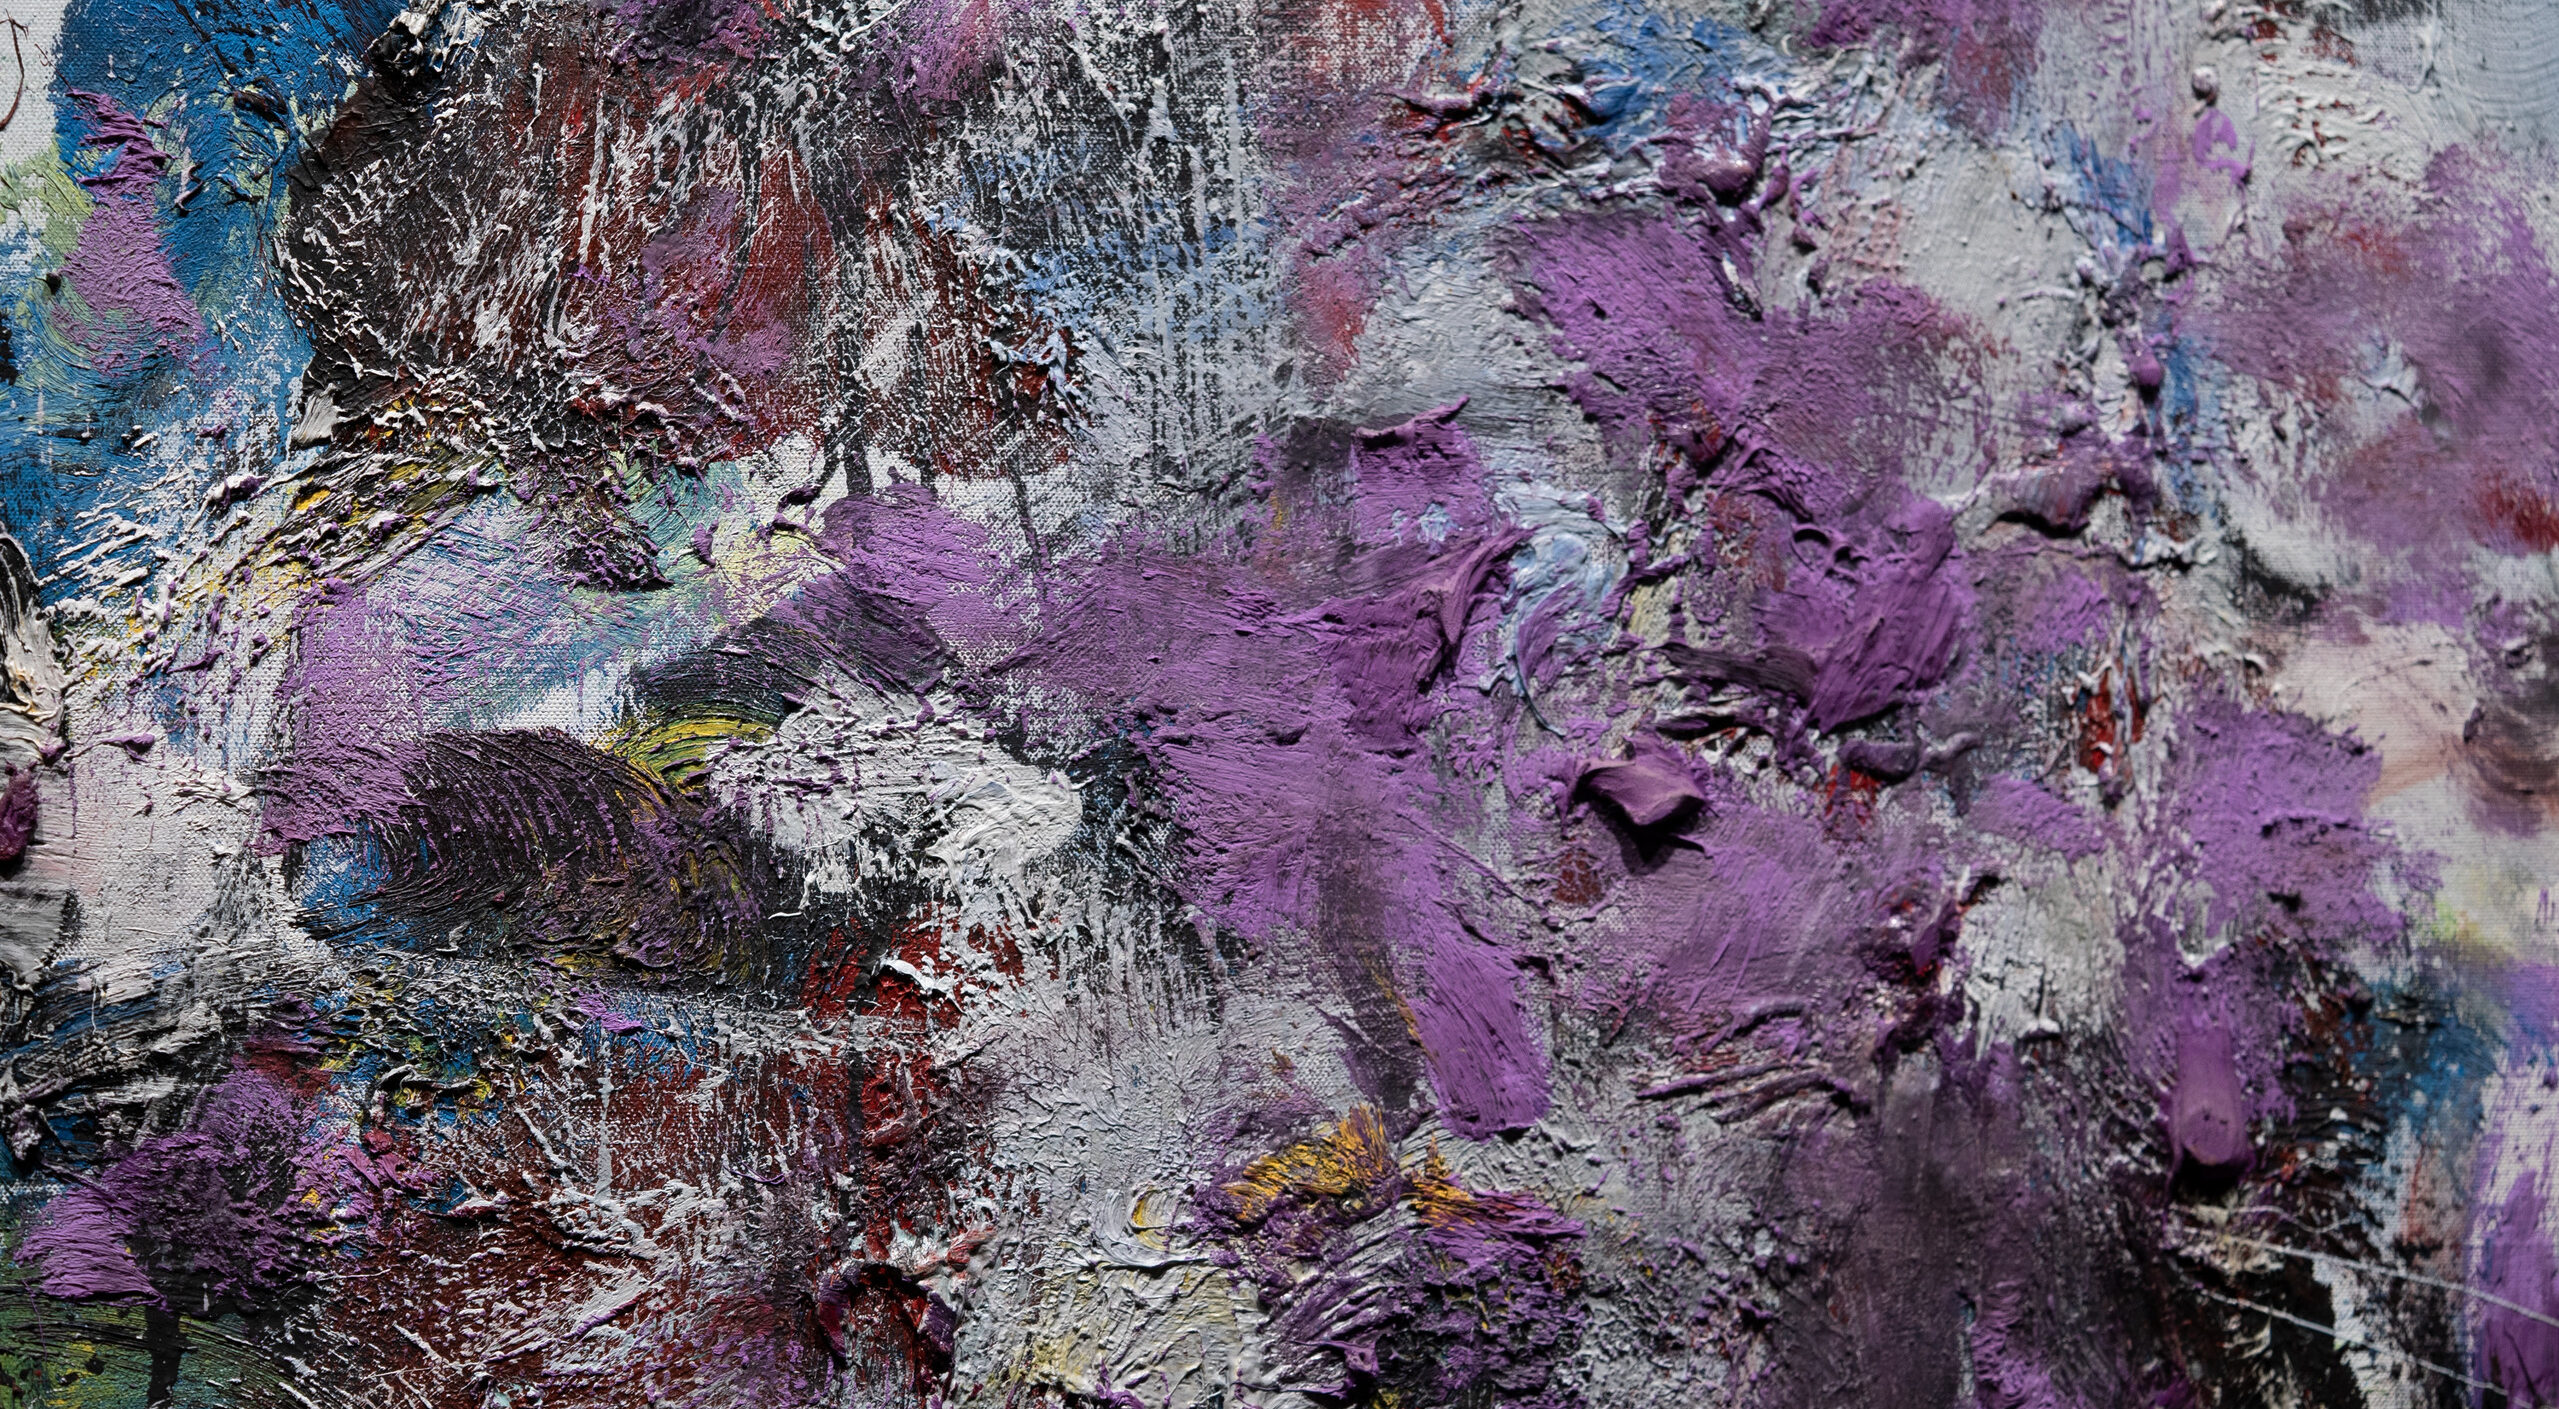 Close-up detail of an abstract painting that features dense and chaotic brushstrokes of pale gray, lavender, and cobalt.